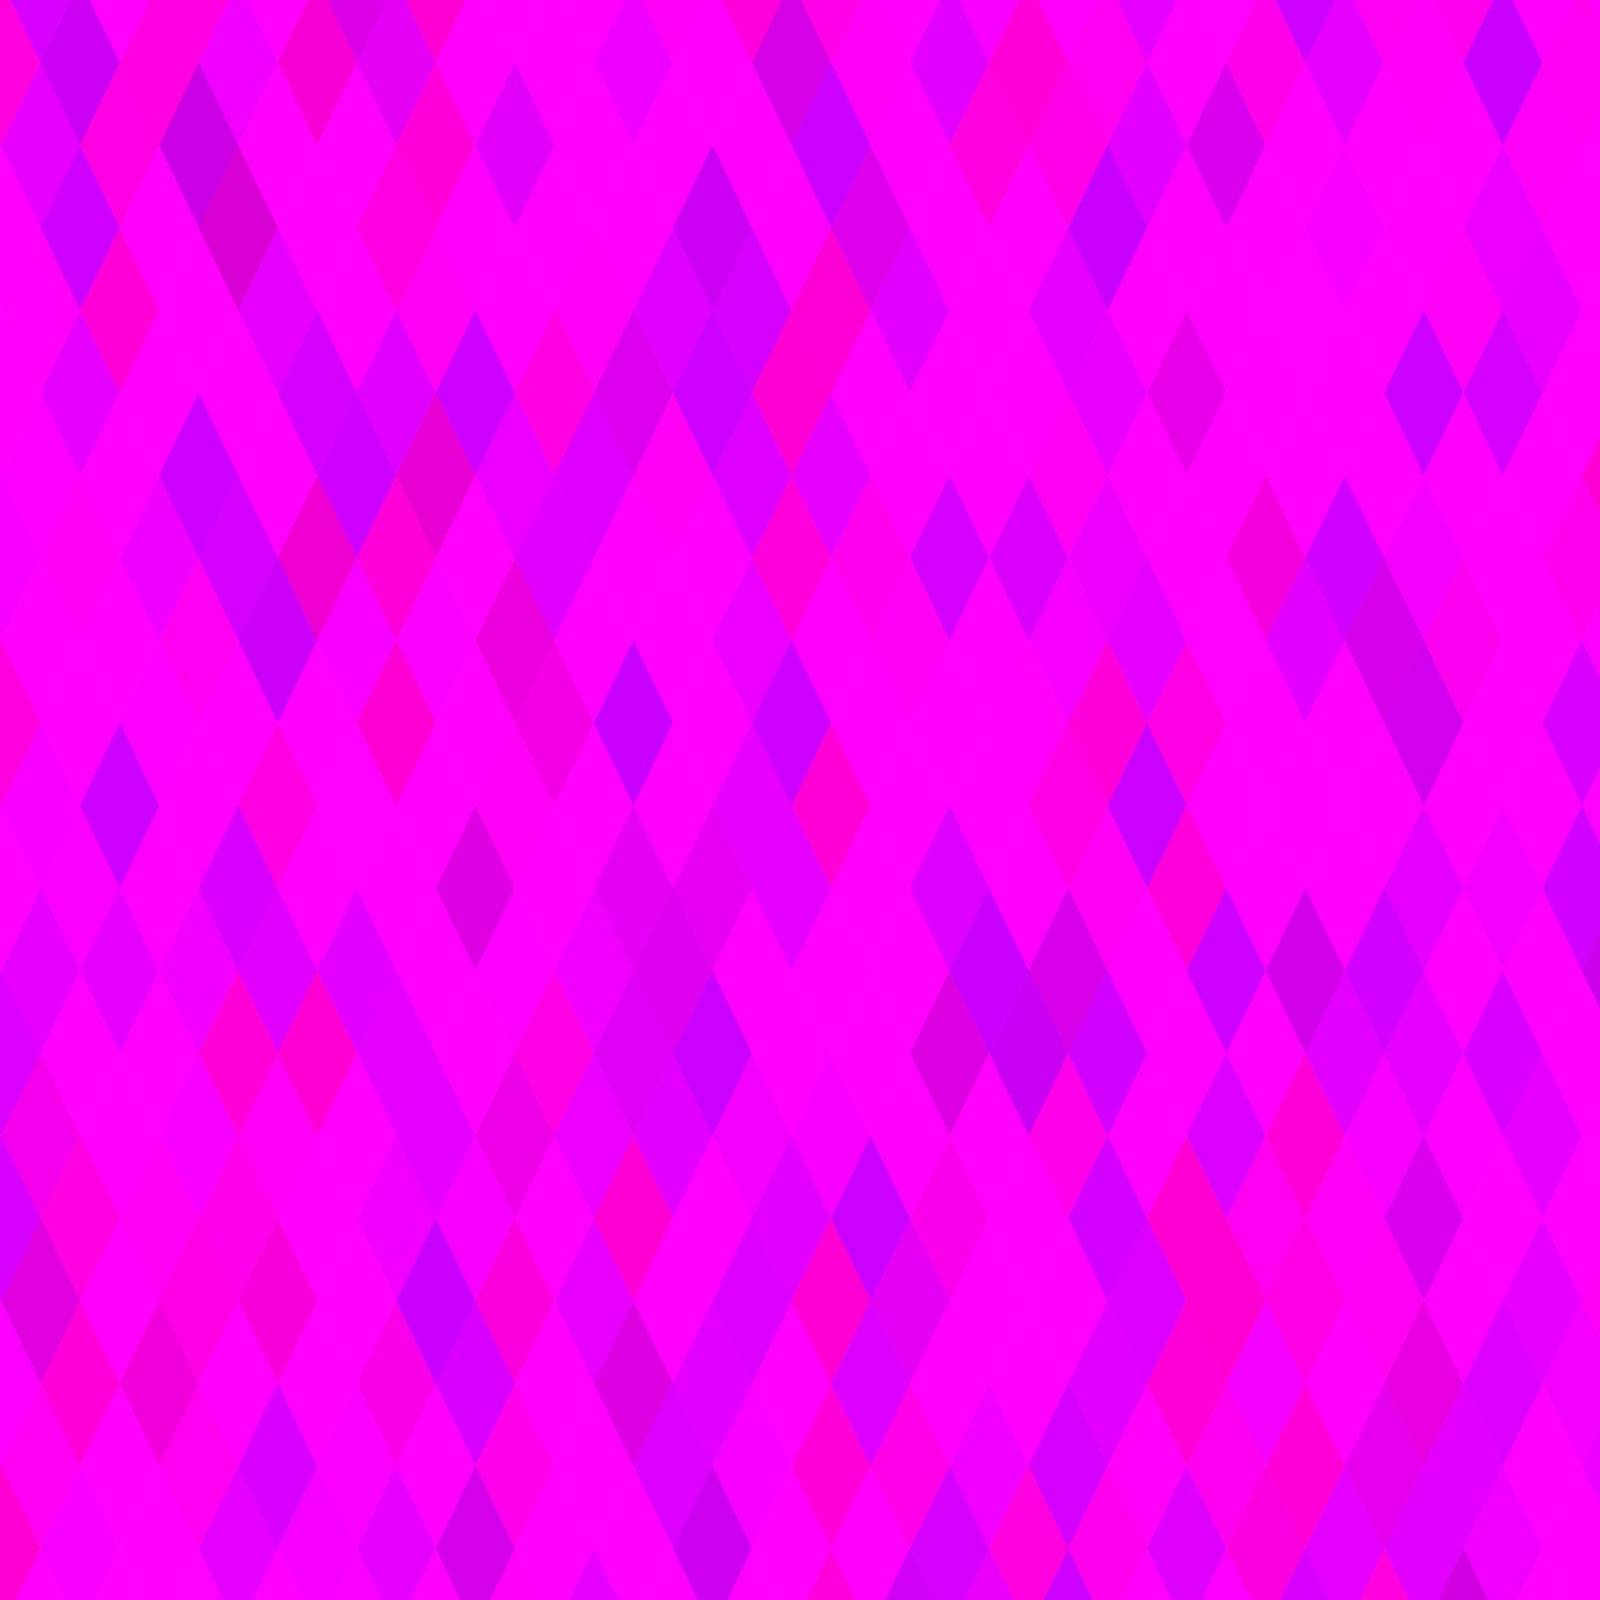 Abstract Geometric Pink Background. Abstract Pink Pattern